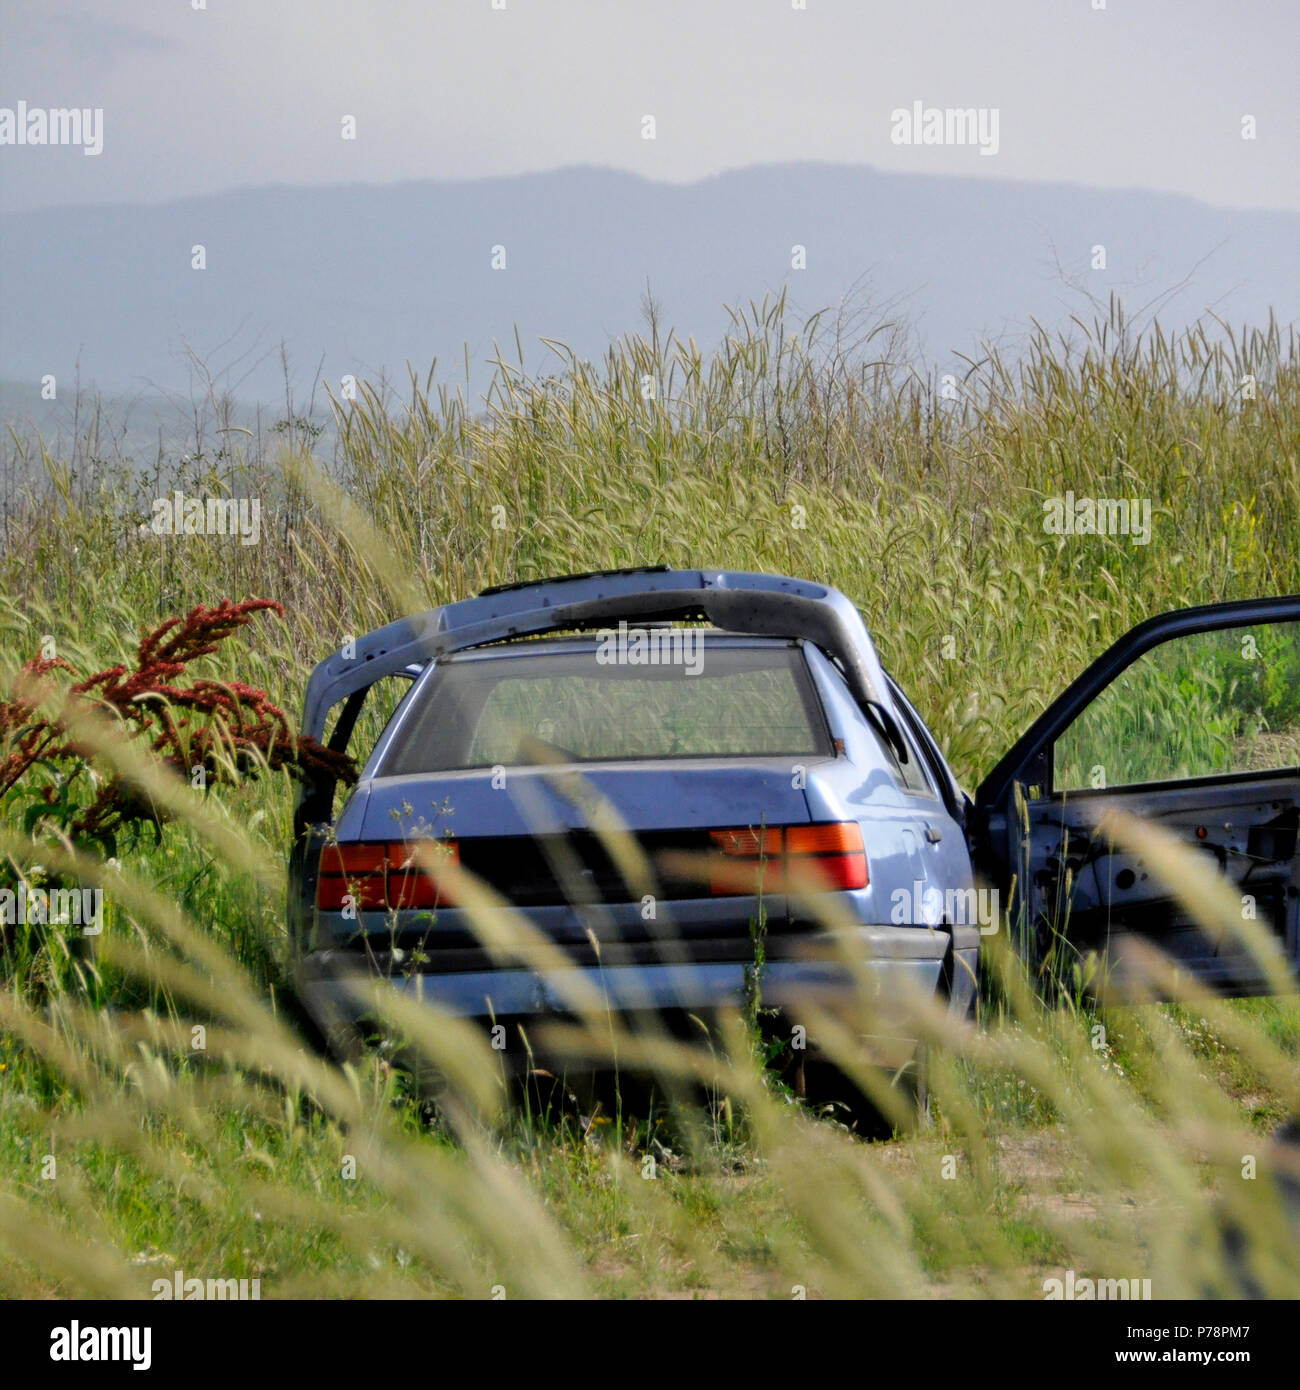 abandoned car after an accident in the field of rural mestnosti - Stock Image